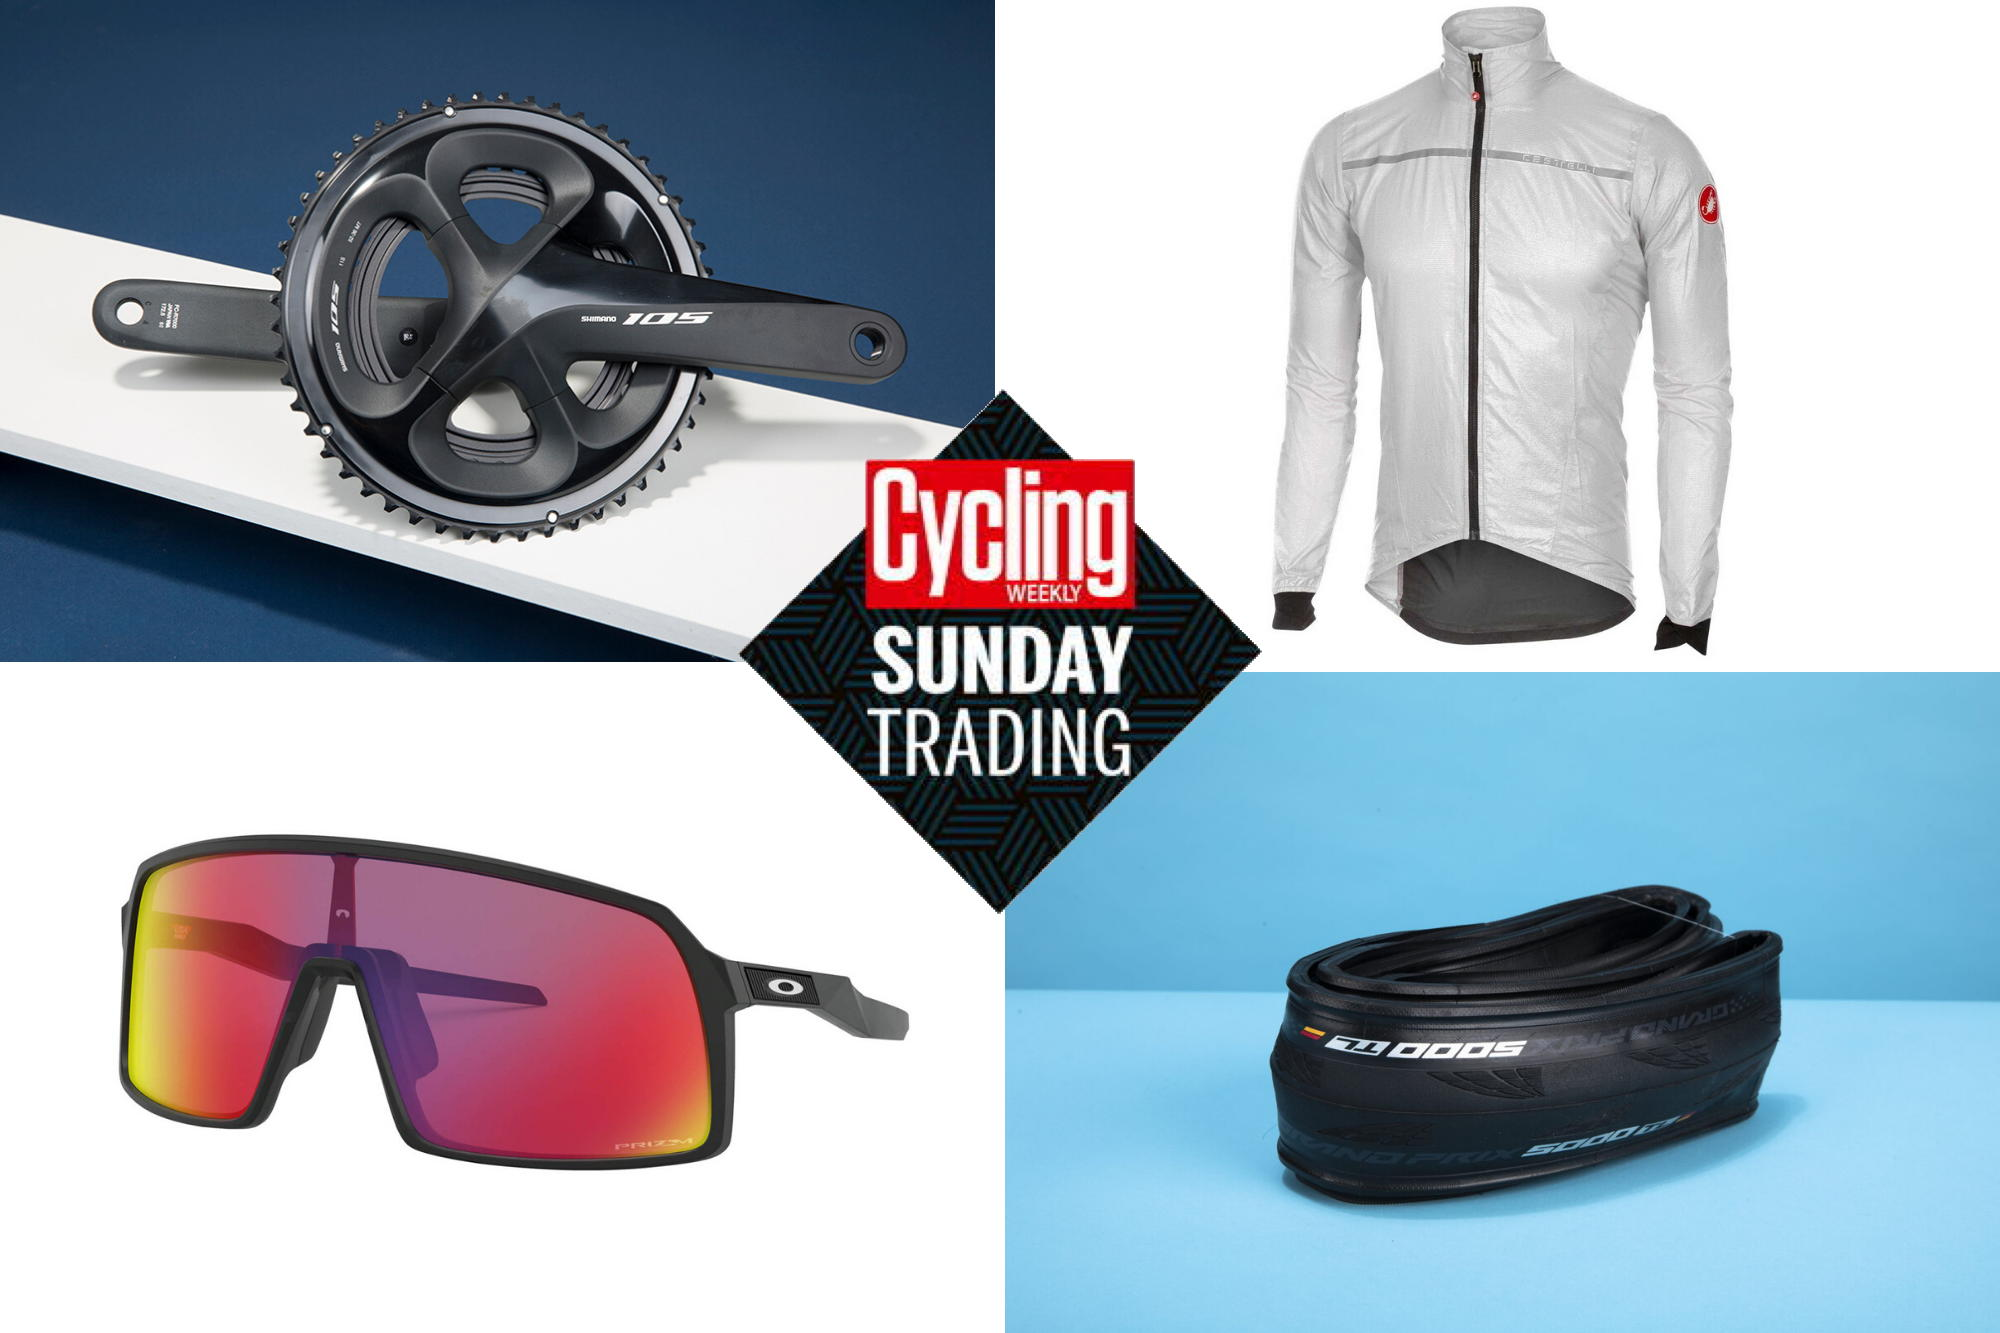 Sunday trading: Save 40% on Shimano's 105 groupset plus much more